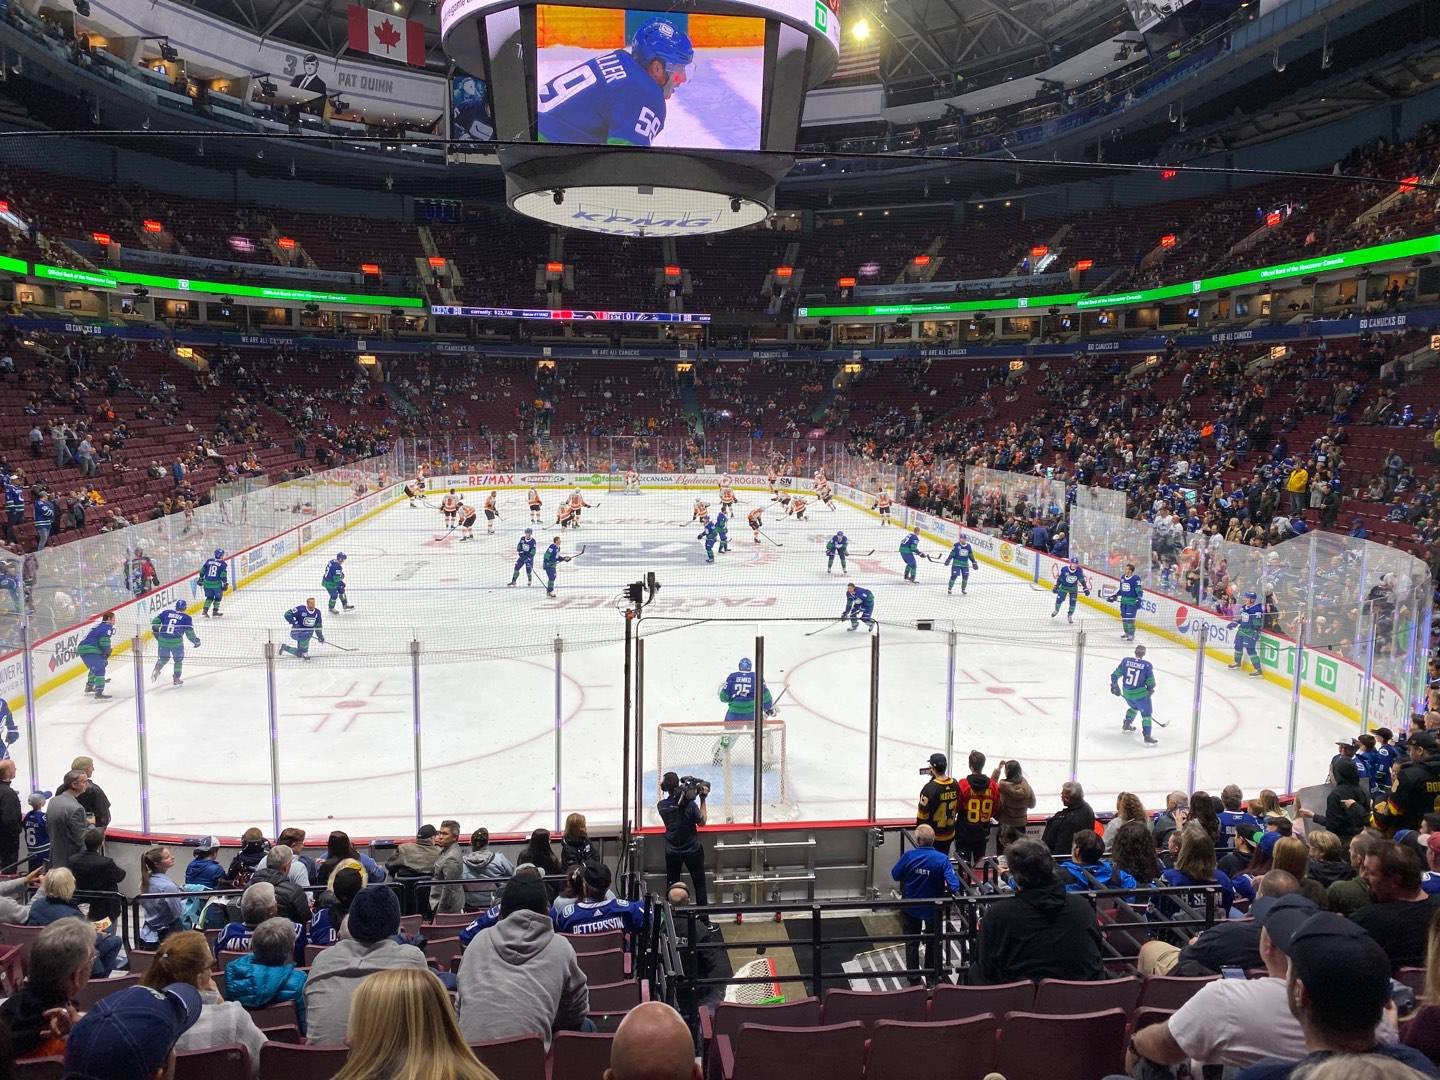 Rogers Arena Section 101 Row 15 Seat 7